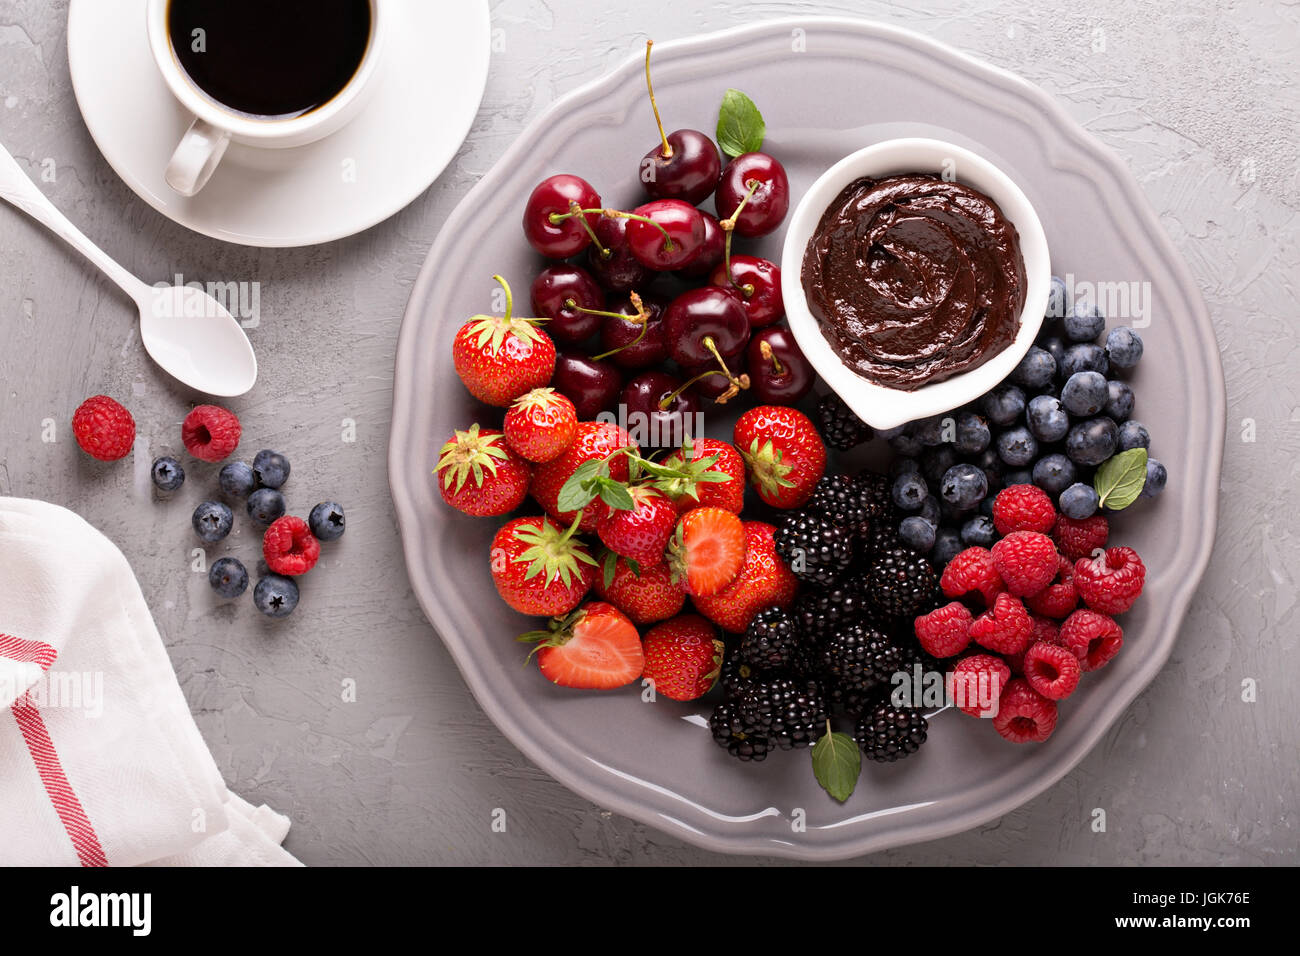 Fresh berries with chocolate sauce for breakfast - Stock Image